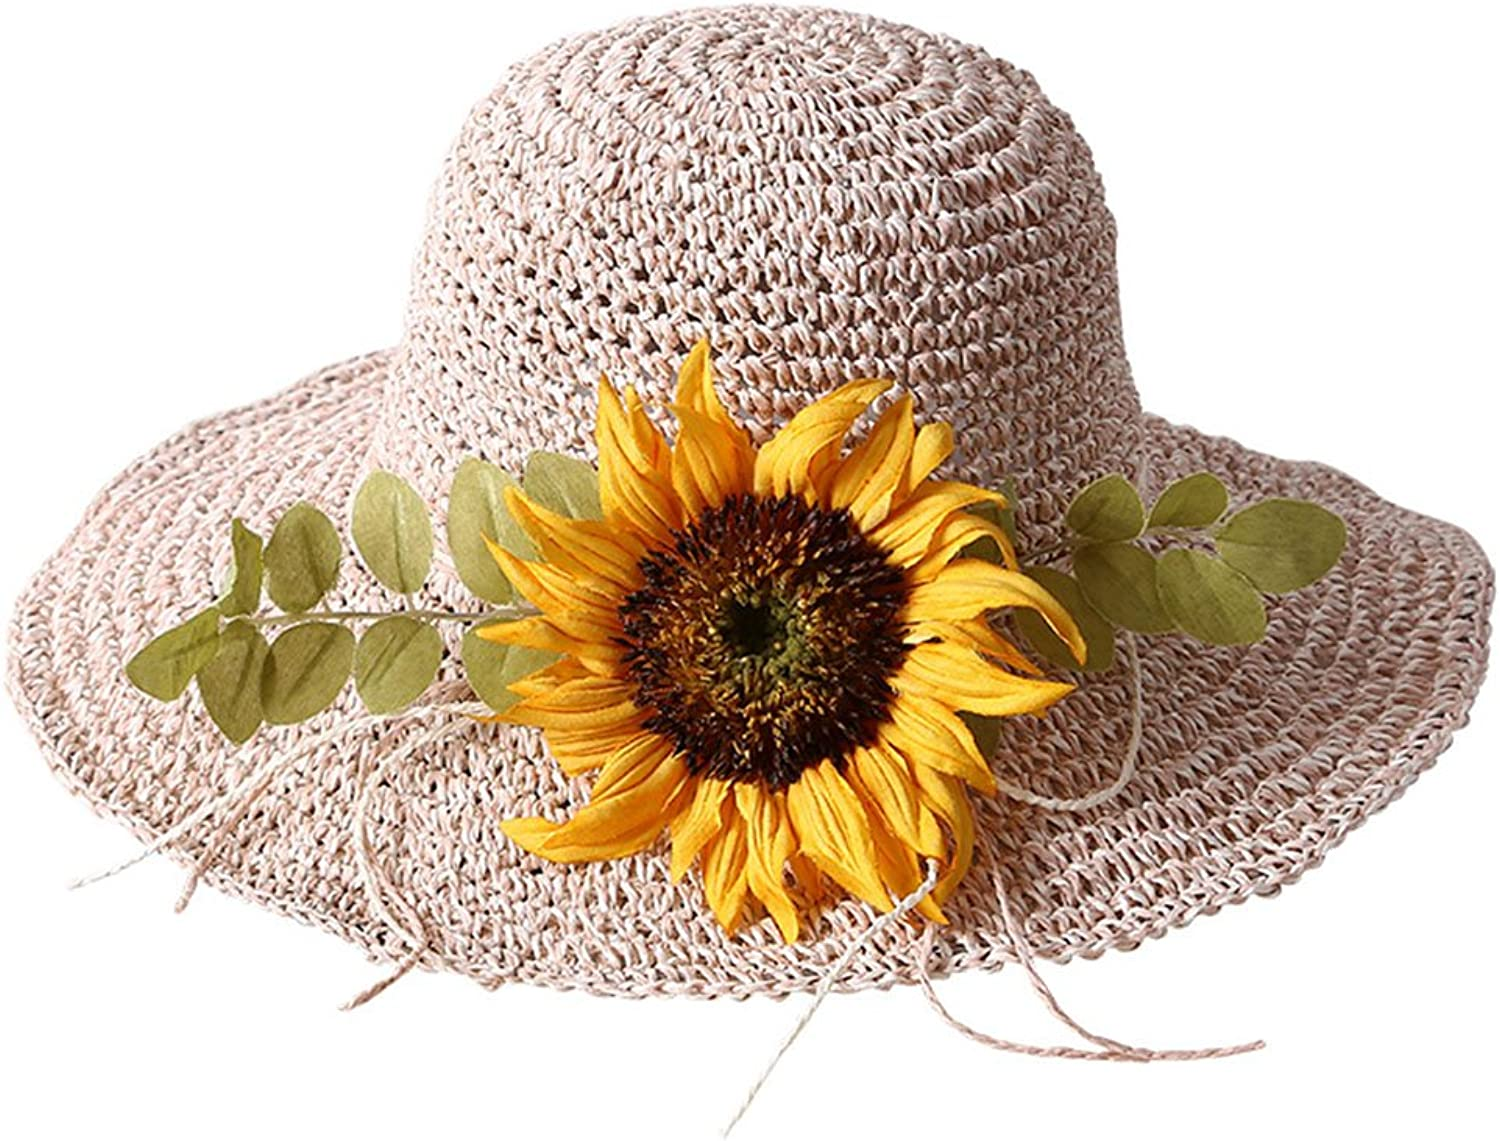 Hats Sun Hat Sports Cap Student Top Cap Visor Beach Cap Lady Summer Straw Hat Sunflower Flower Beach Sun Hat Sun Hat Bicycle (color   Beige, Size   57 cm)